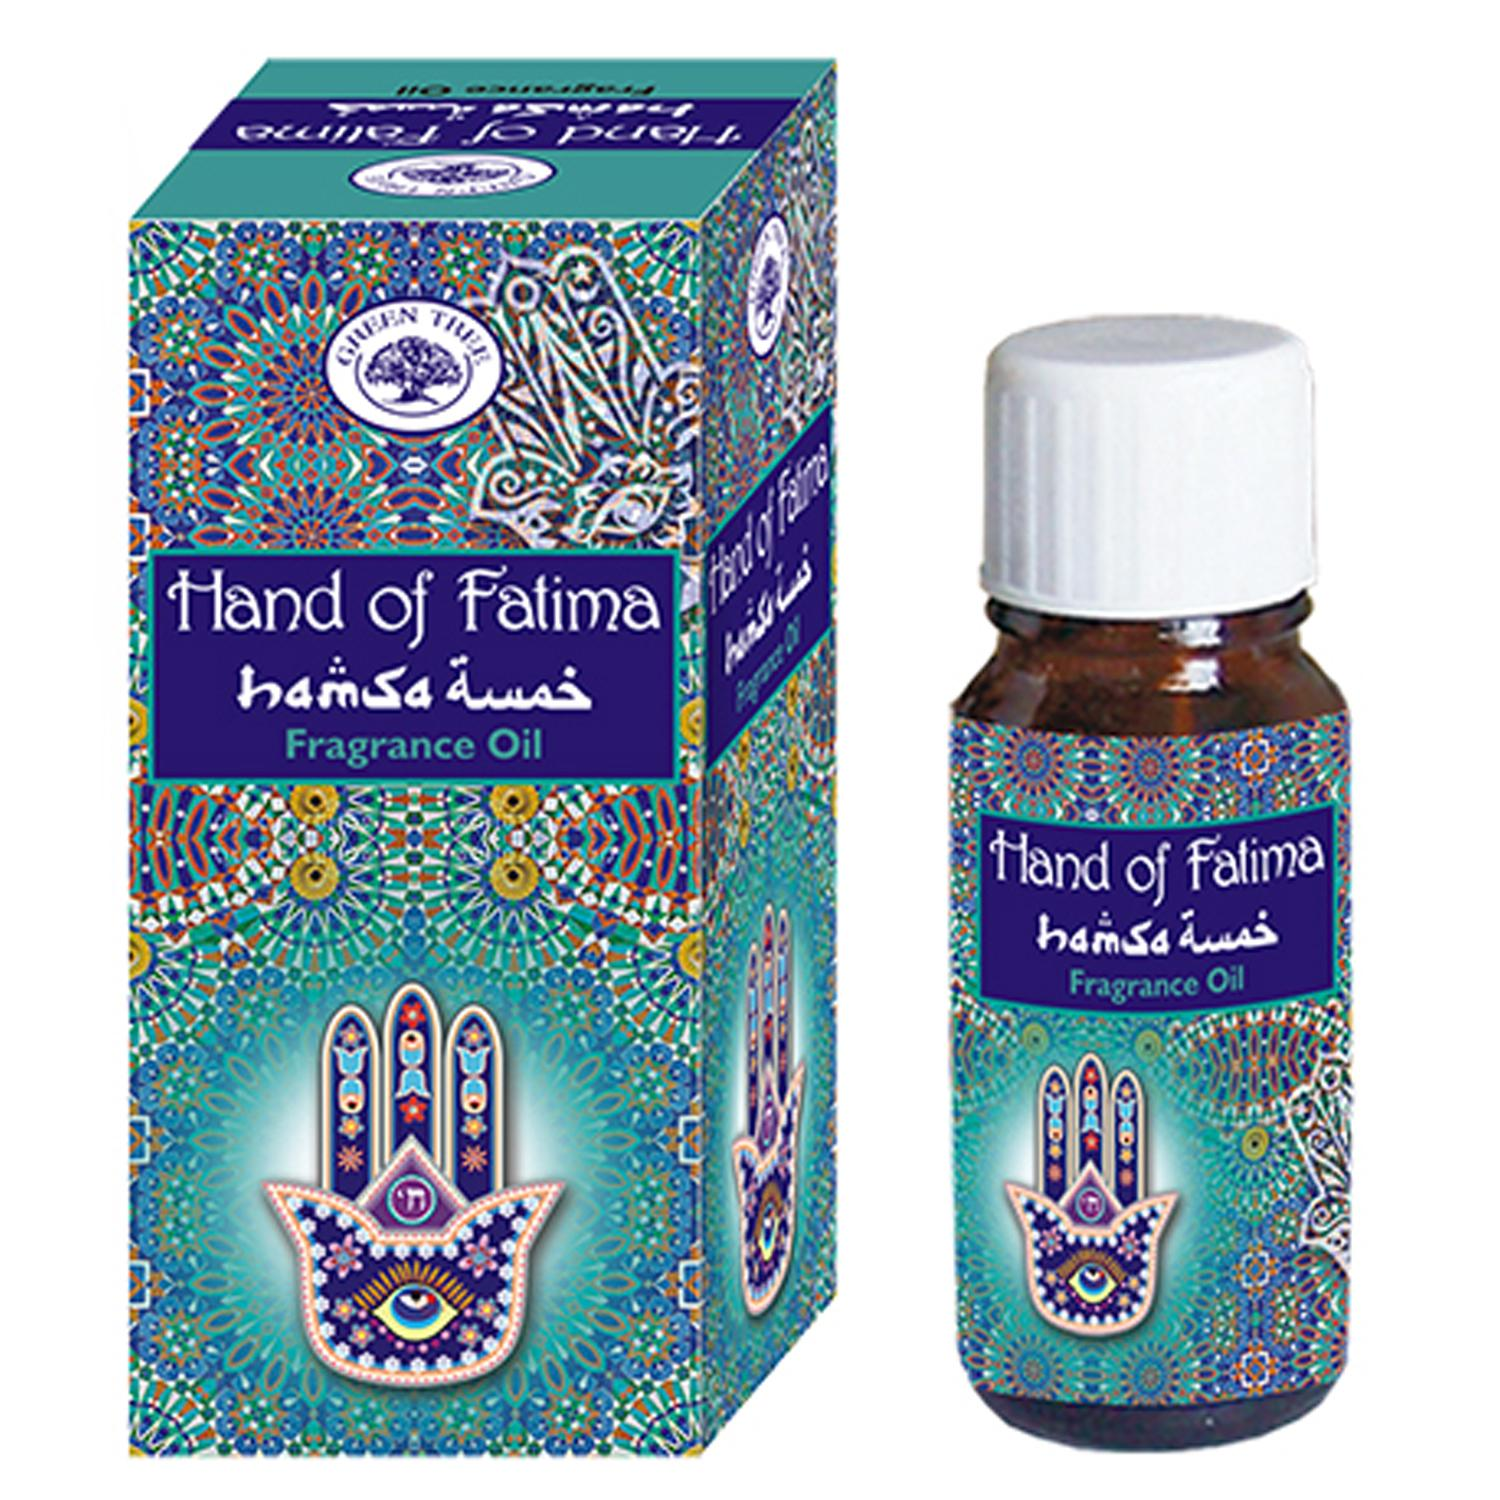 Green Tree Fragrance Oil Hand Of Fatima Magicessence